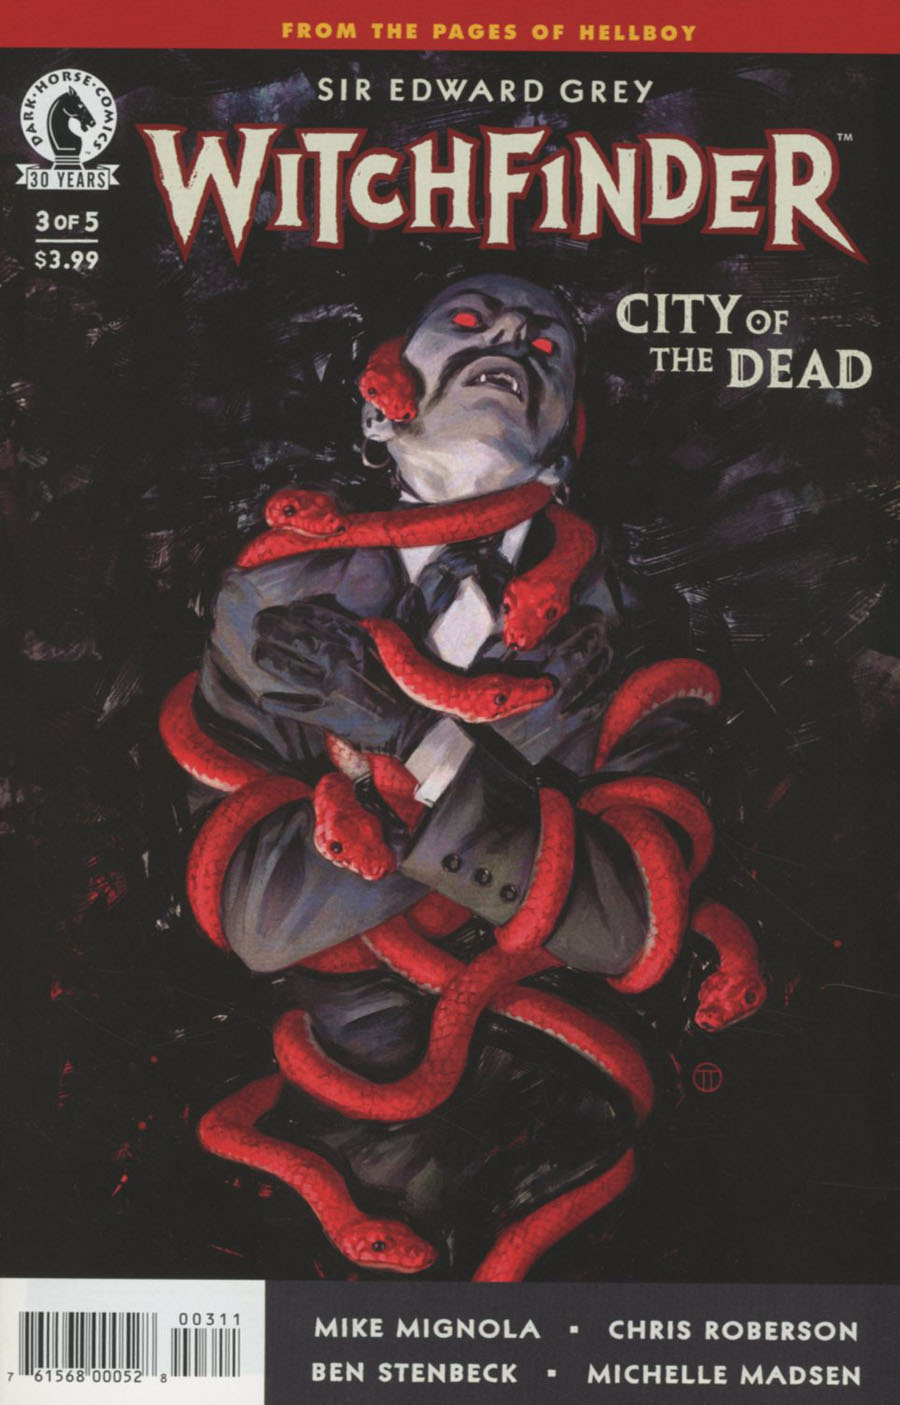 Witchfinder City Of The Dead #3